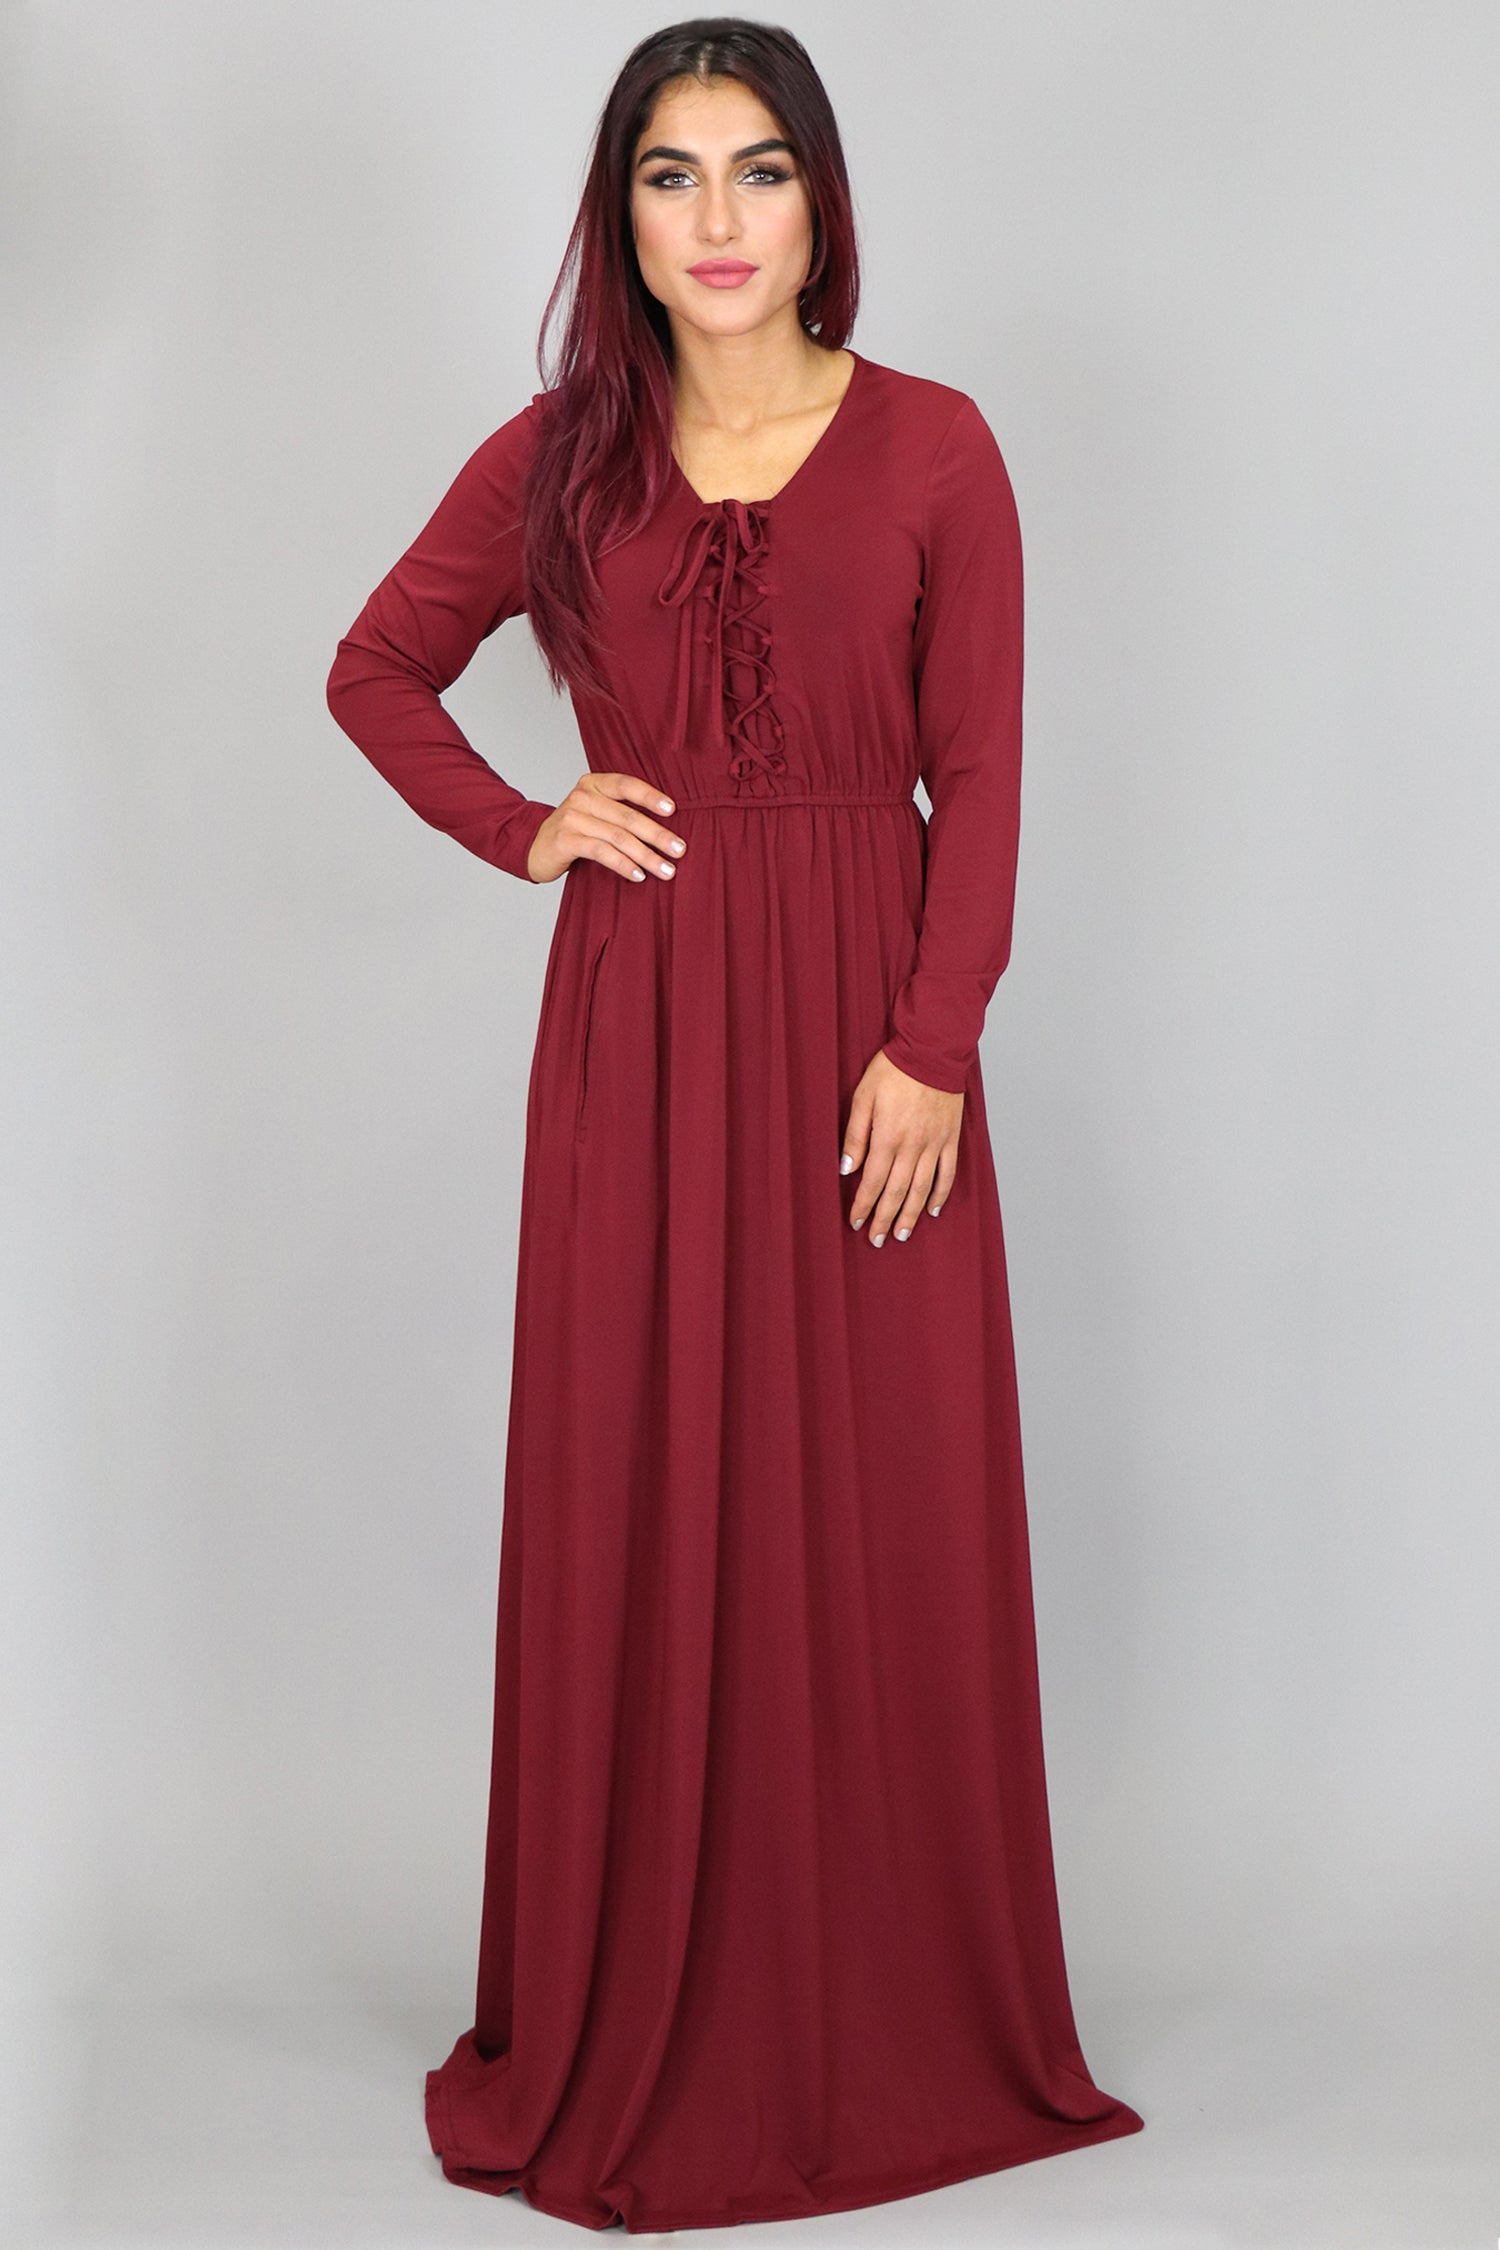 5b610bdc330 Wine Red Lace- up Spandex Maxi Dress – Abayati Fashion